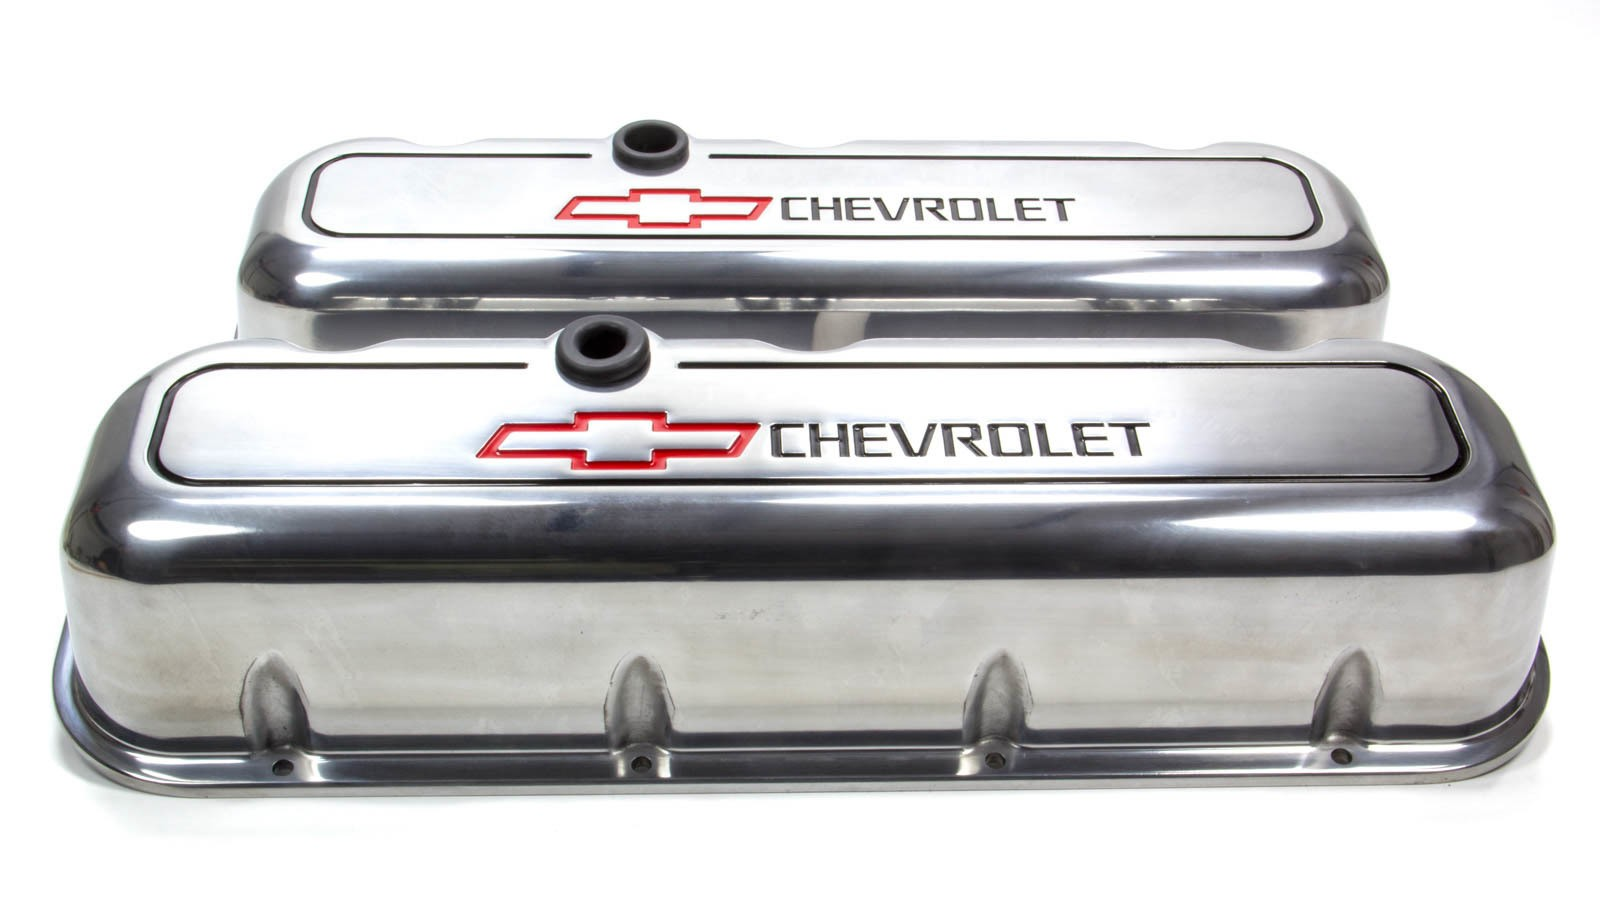 Proform 141-142 Valve Cover, Die-Cast, Tall, Baffled, Breather Hole, Recessed Chevrolet Bowtie Logo, Aluminum, Polished, Big Block Chevy, Pair